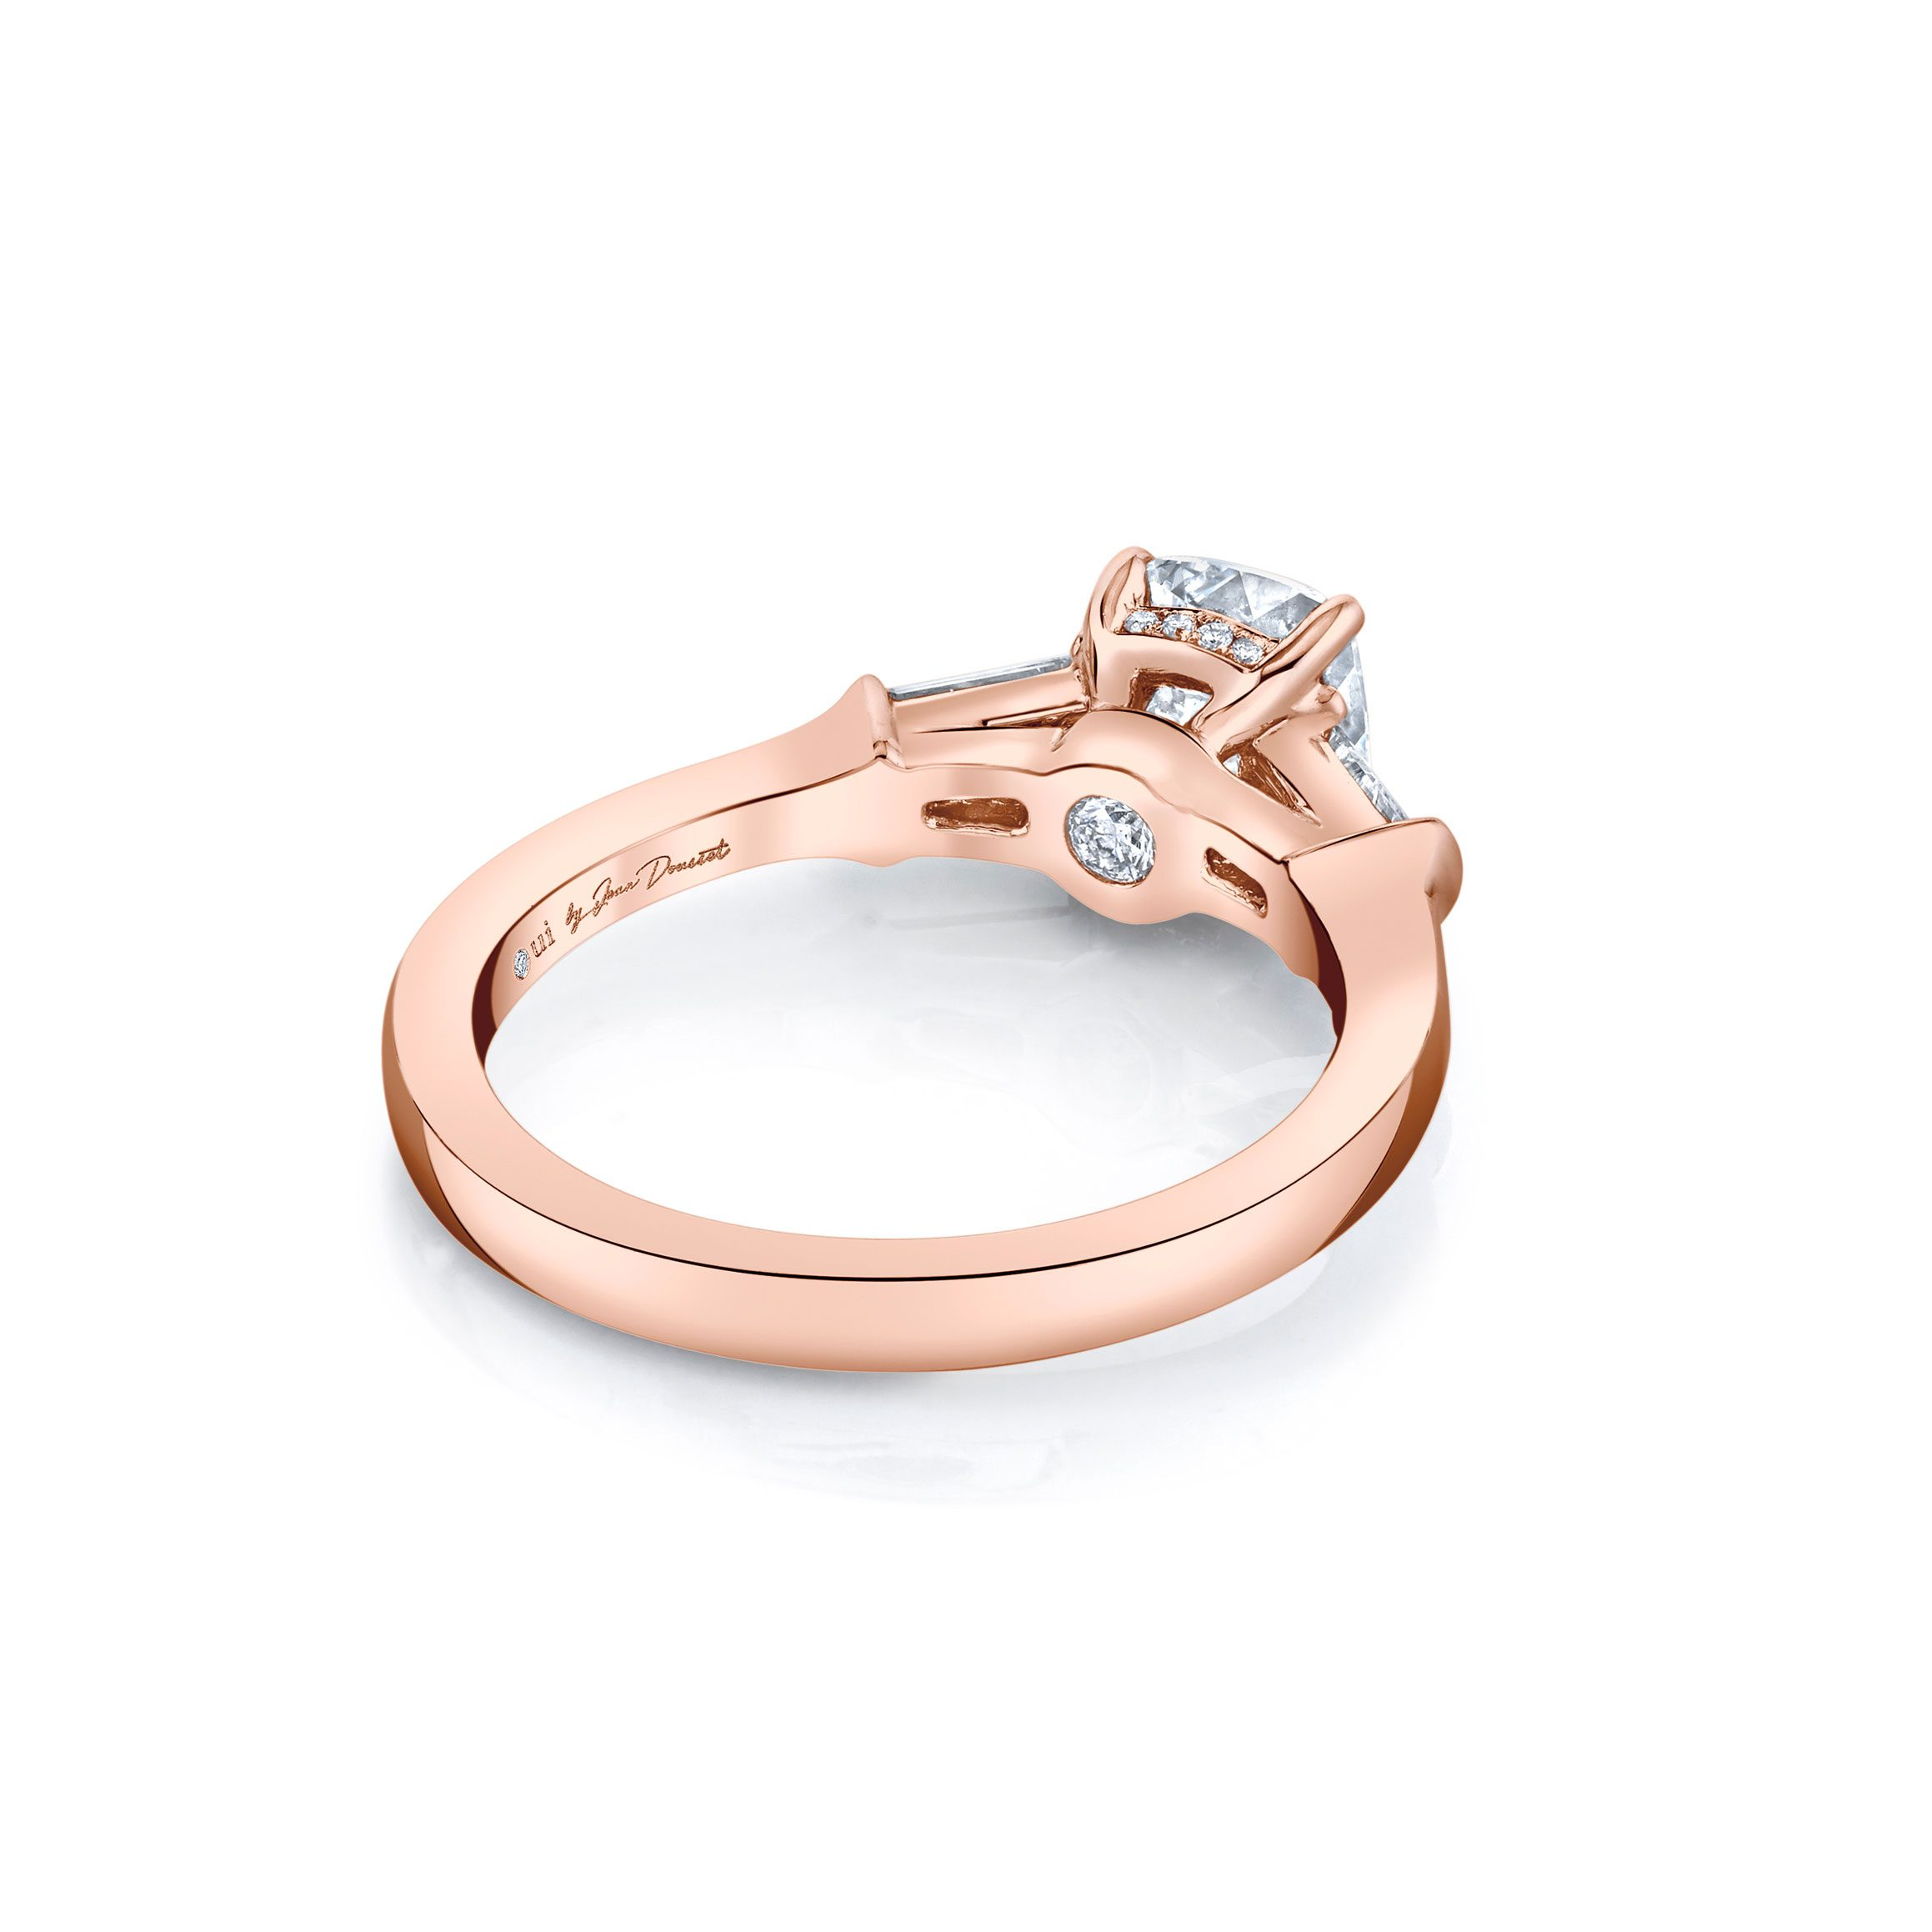 Claire Cushion Three Stone Engagement Ring with tapered baguette diamond side stones in 18k Rose Gold Back View by Oui by Jean Dousset